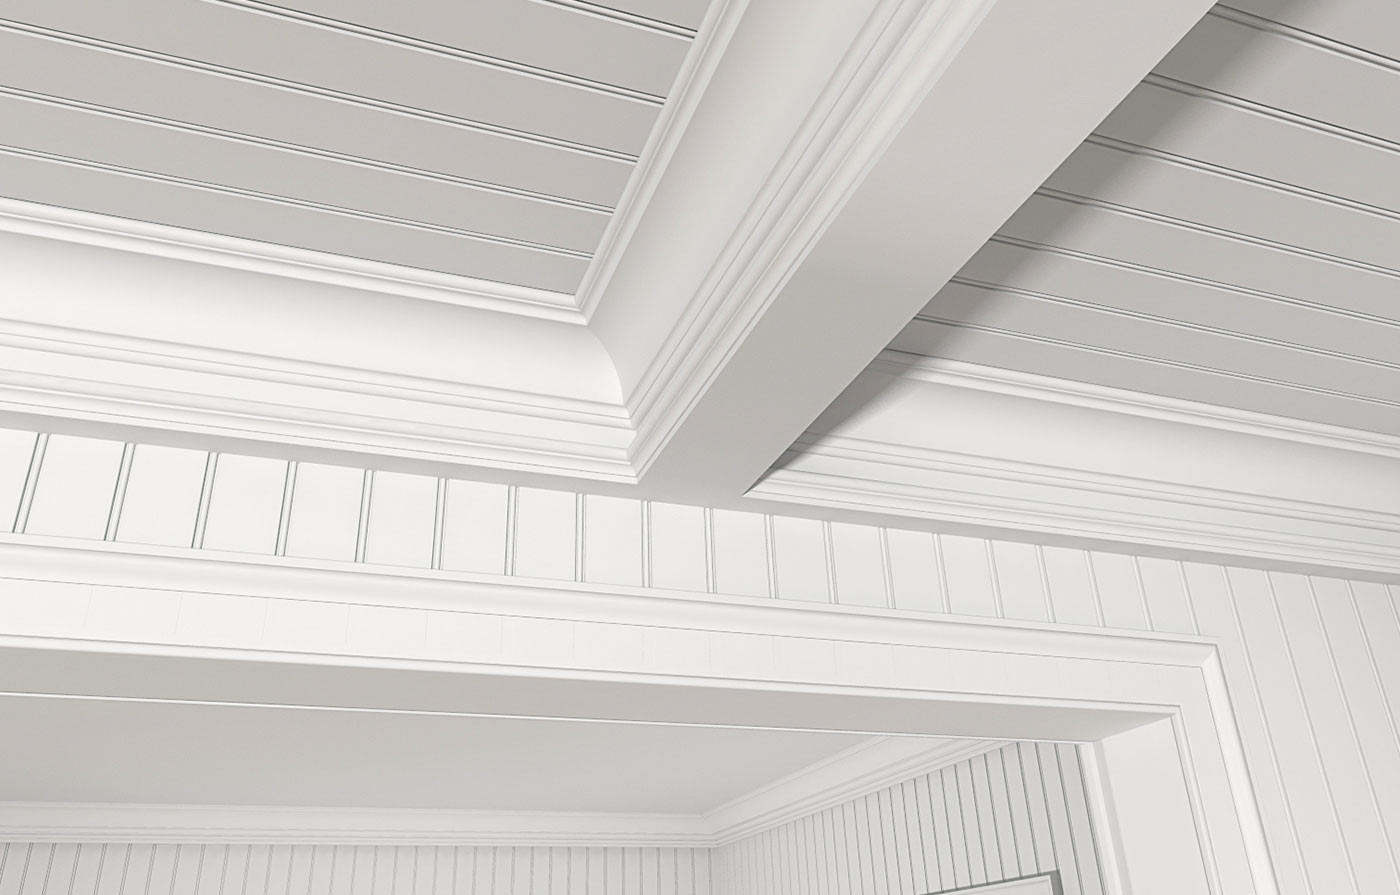 3 Inches On Center Standard Bead, GSC512, 8577 (Coffered Ceiling), LK4 Casing